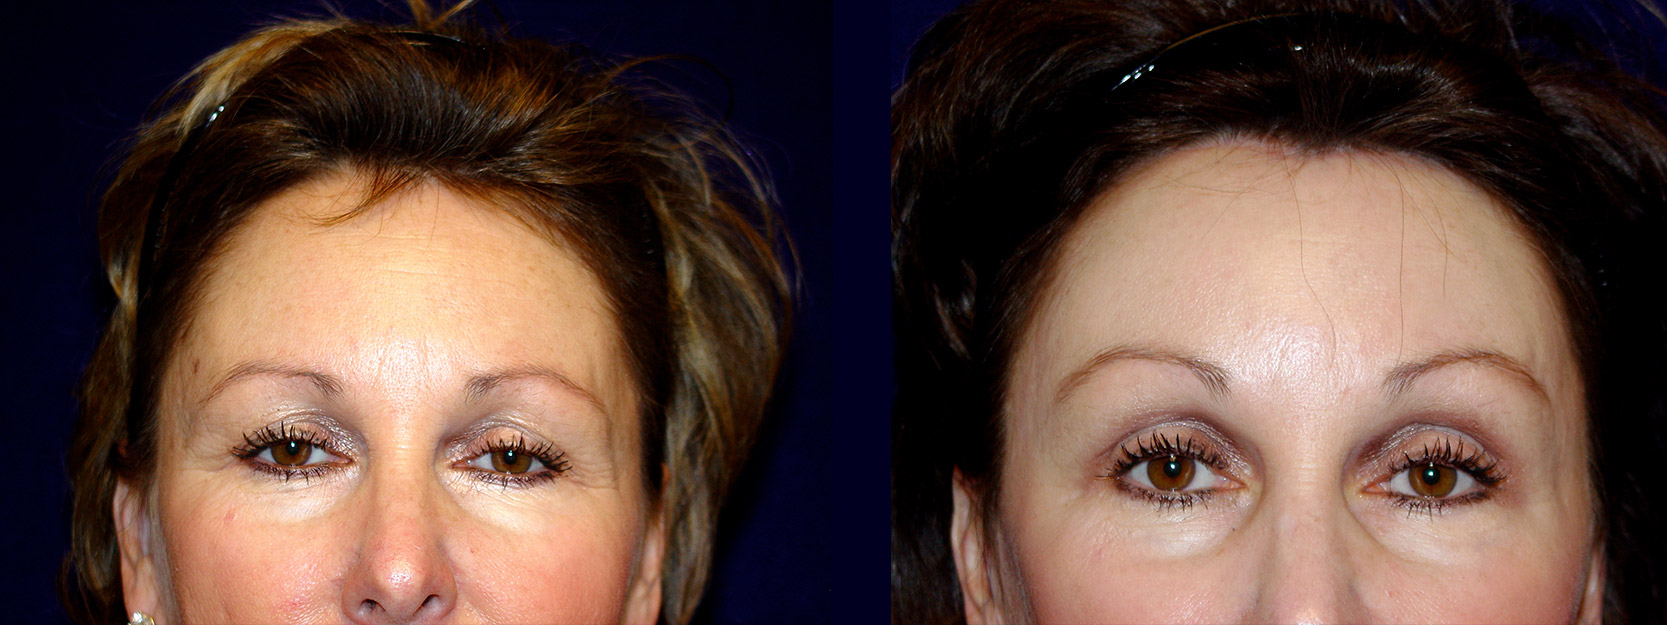 Frontal View - Upper Eyelid Surgery and Browlift